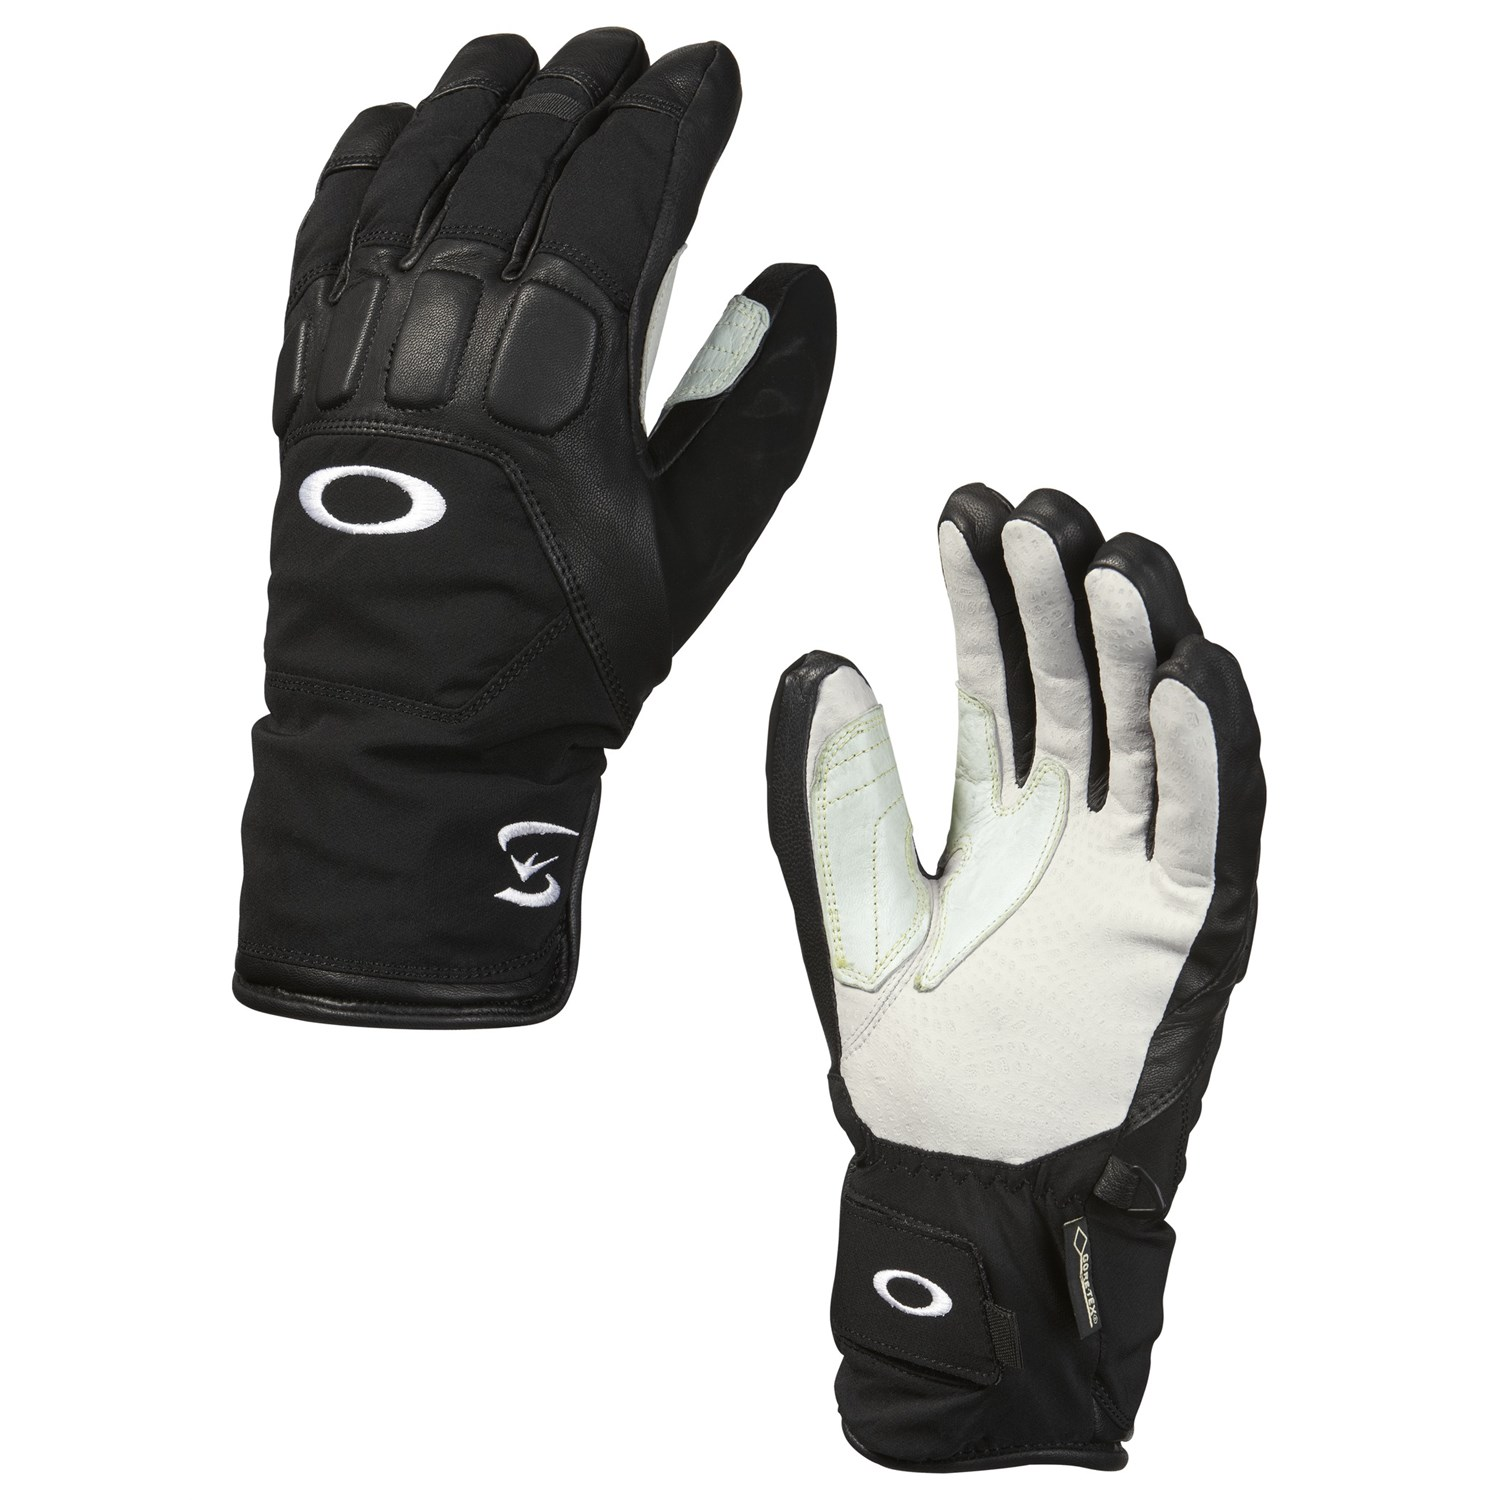 Mens leather gloves black friday - Mens Leather Gloves Black Friday 27